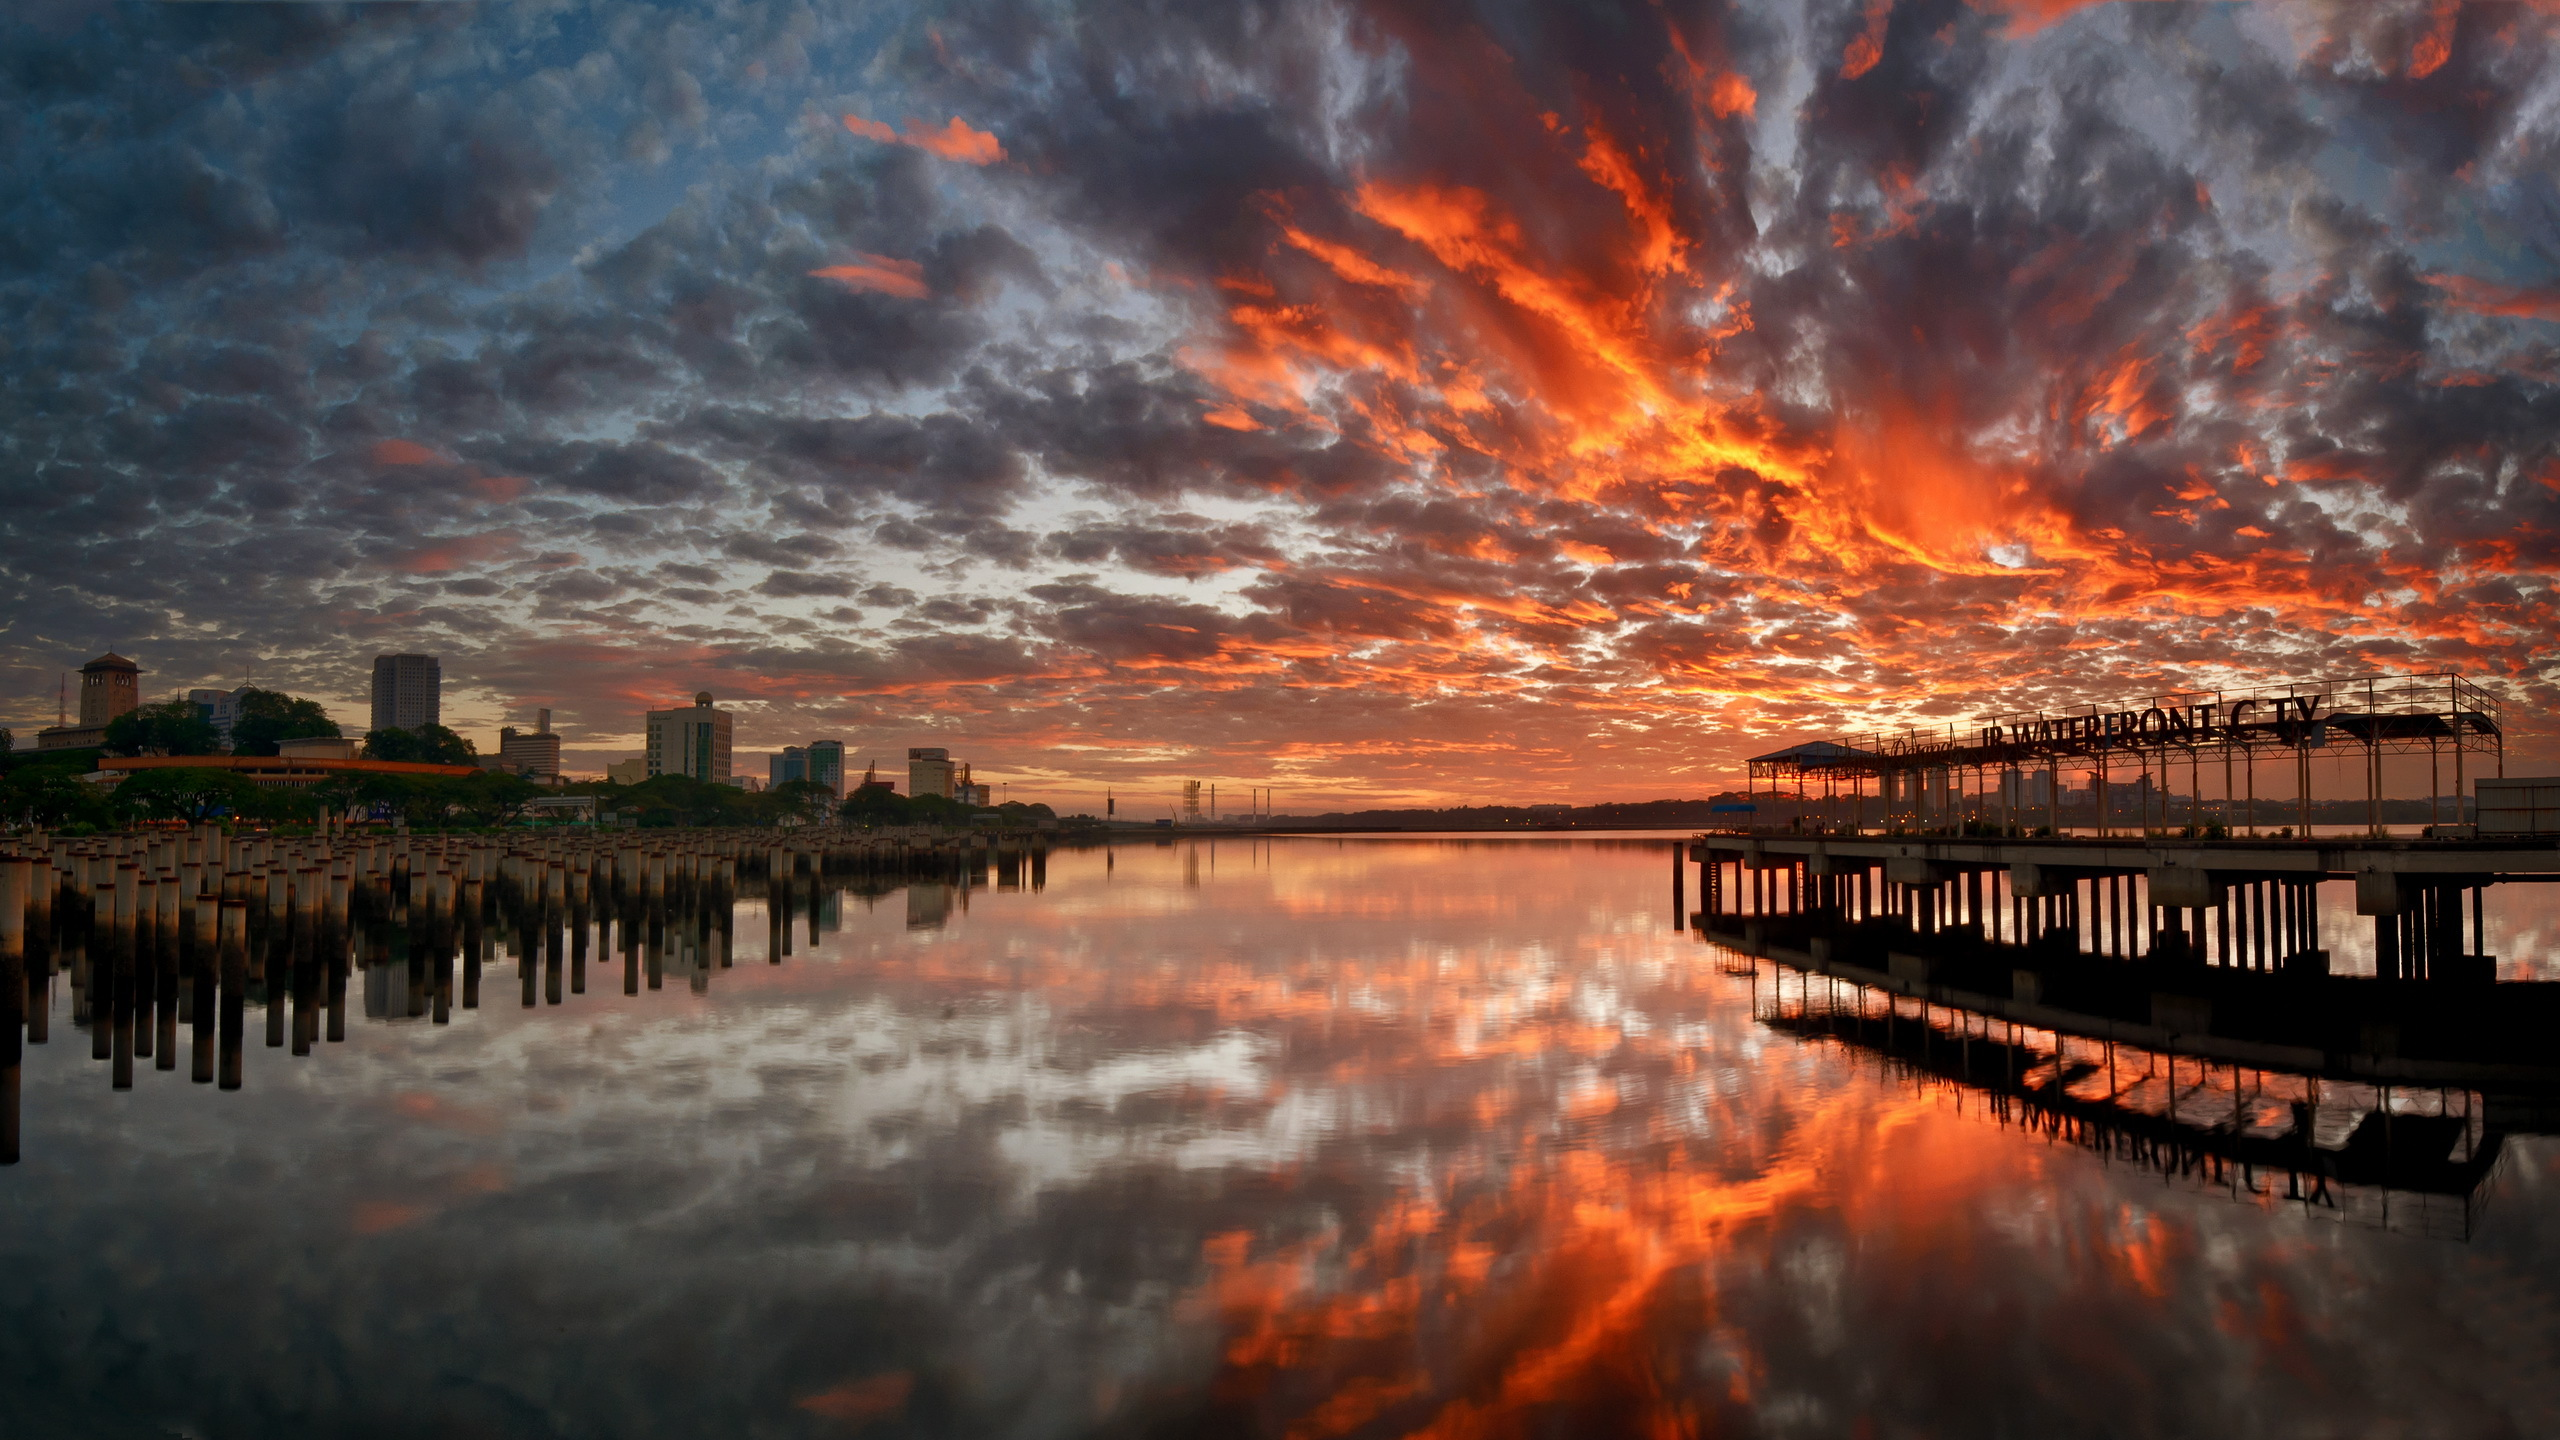 Reflection HD Wallpaper | Background Image | 2560x1440 ...